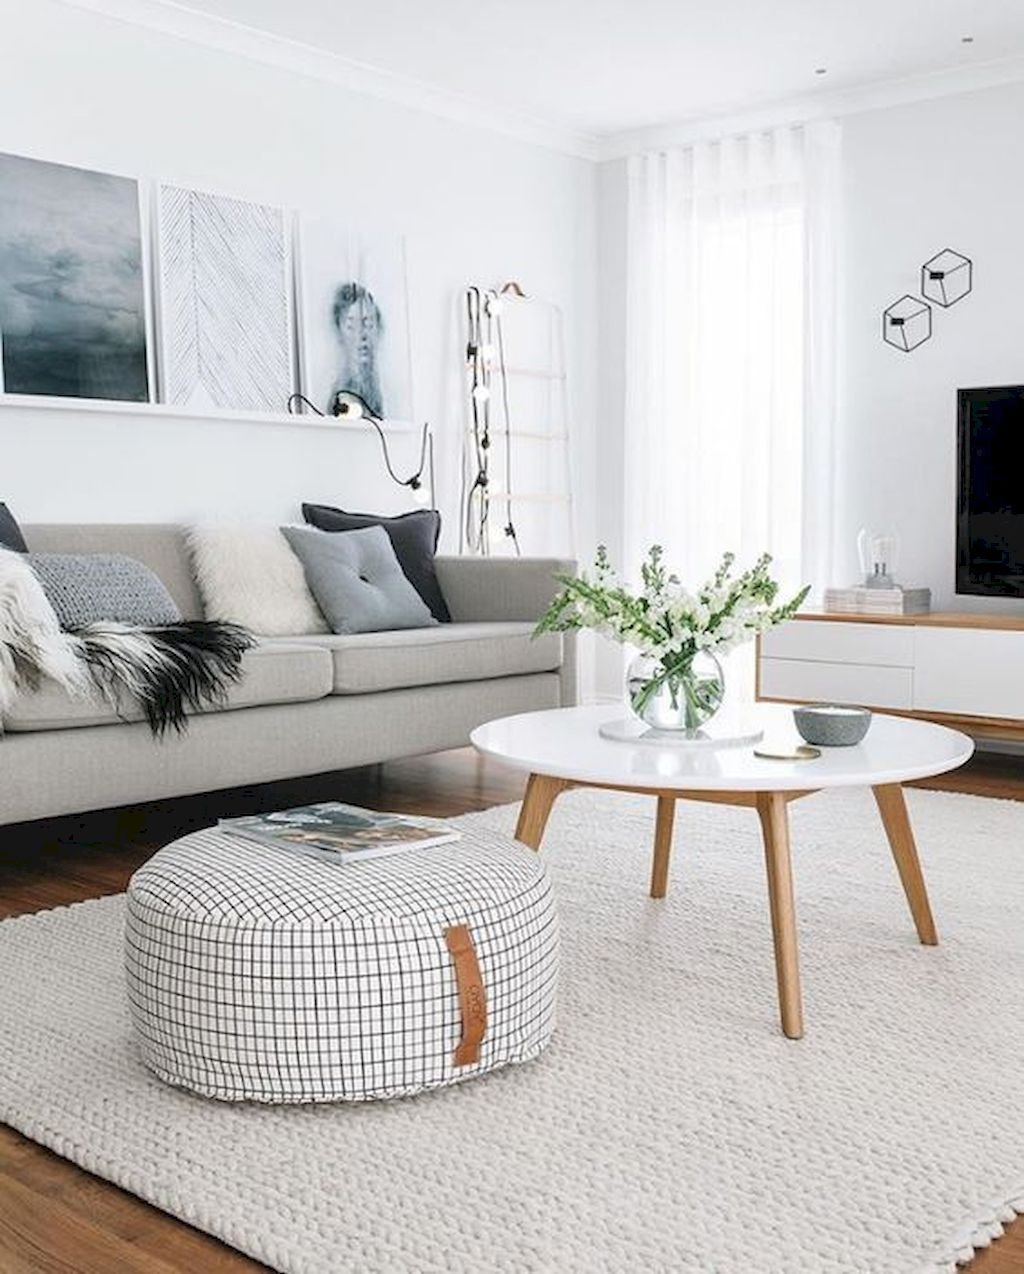 Cool 50 Modern And Affordable Dining Room Decoration Ideas Https Decoralink Com Scandinavian Design Living Room Living Room Scandinavian Living Room Windows